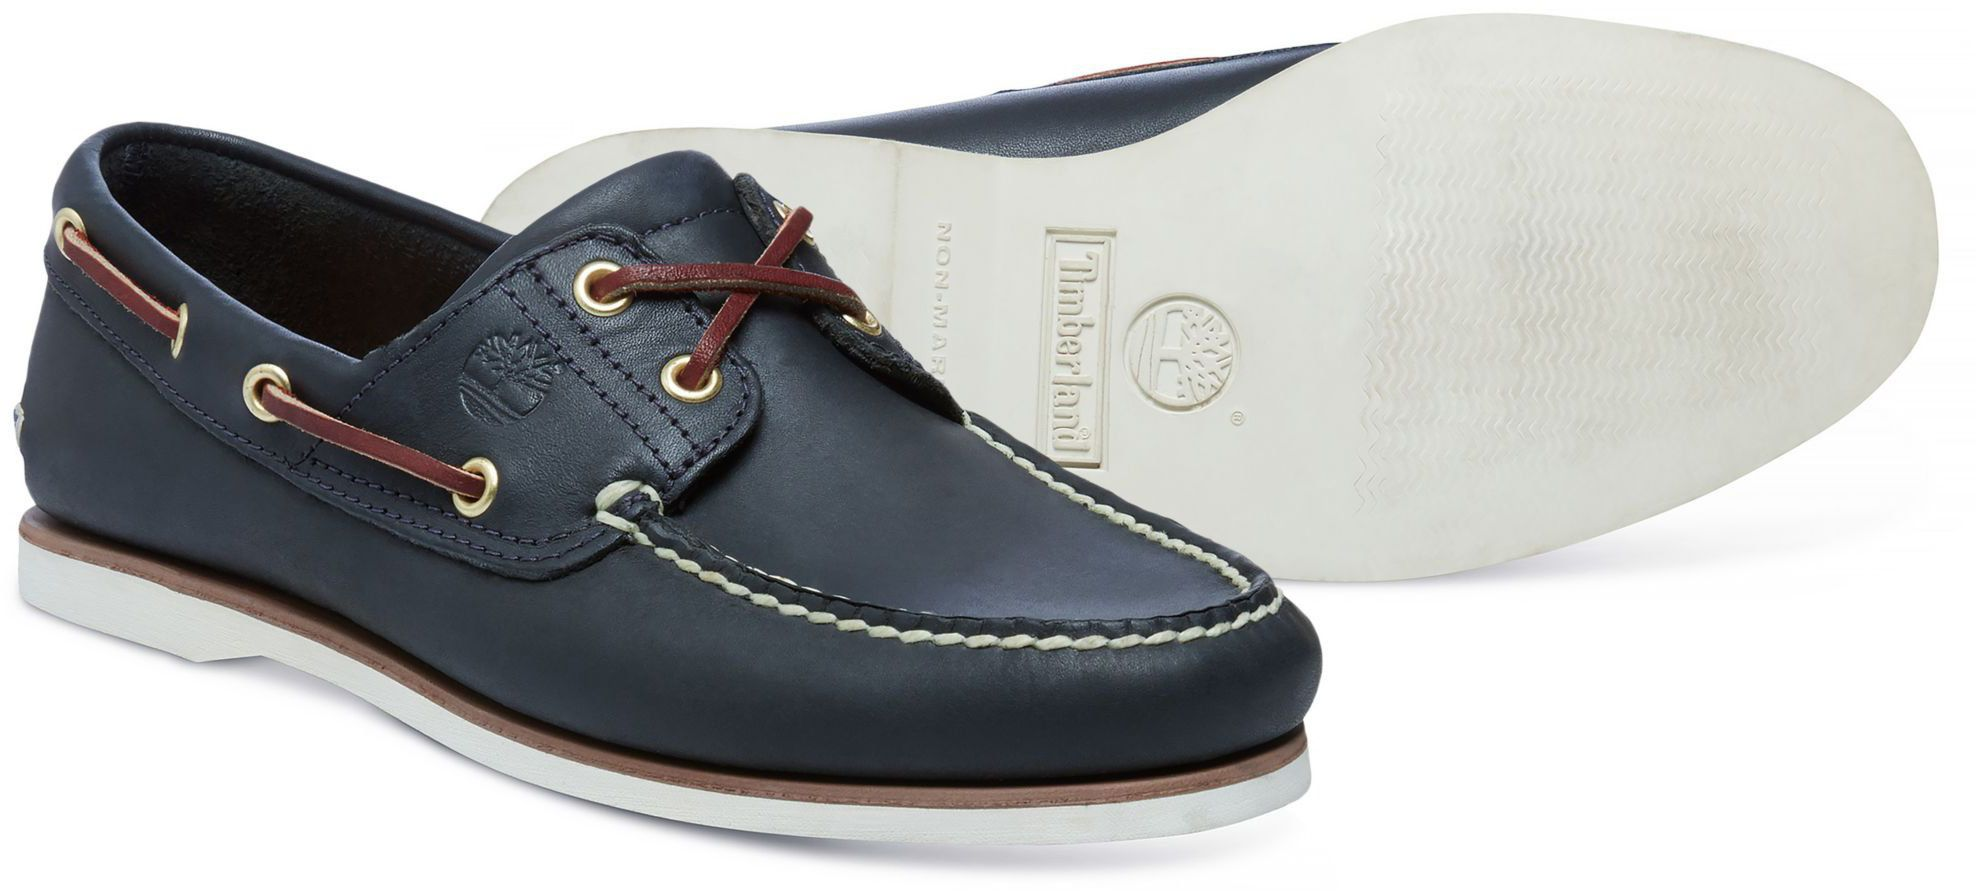 0a0b5f94c88 Timberland Cls2i Boat Navy Mens Shoes UK 10 for sale online   eBay